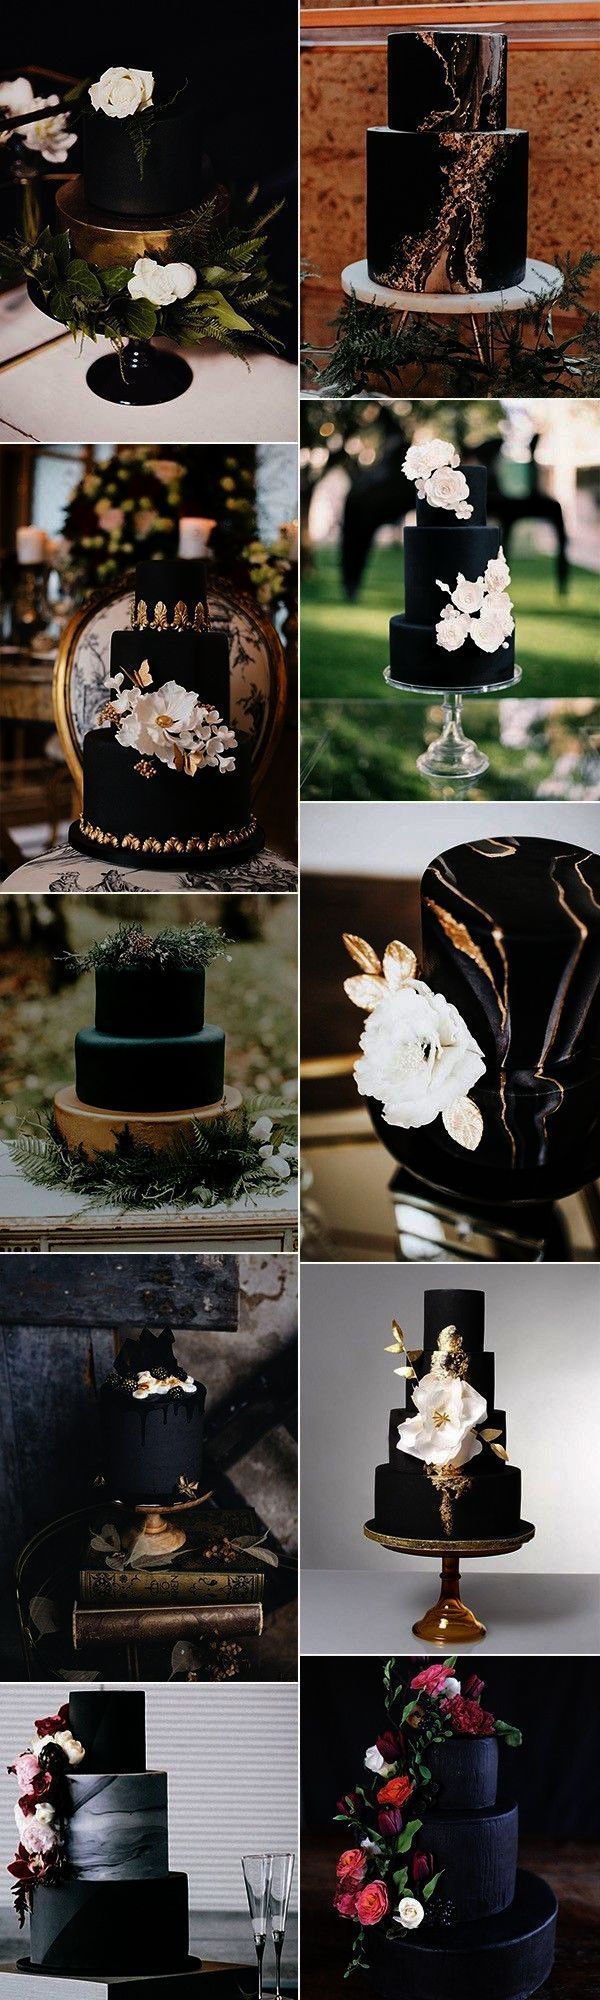 Wedding Cakes Pictures And Prices In Ghana One Wedding Cakes Pictures Pdf Till W Cool Crafts Black Wedding Cakes Wedding Cake Pictures Gorgeous Wedding Cake